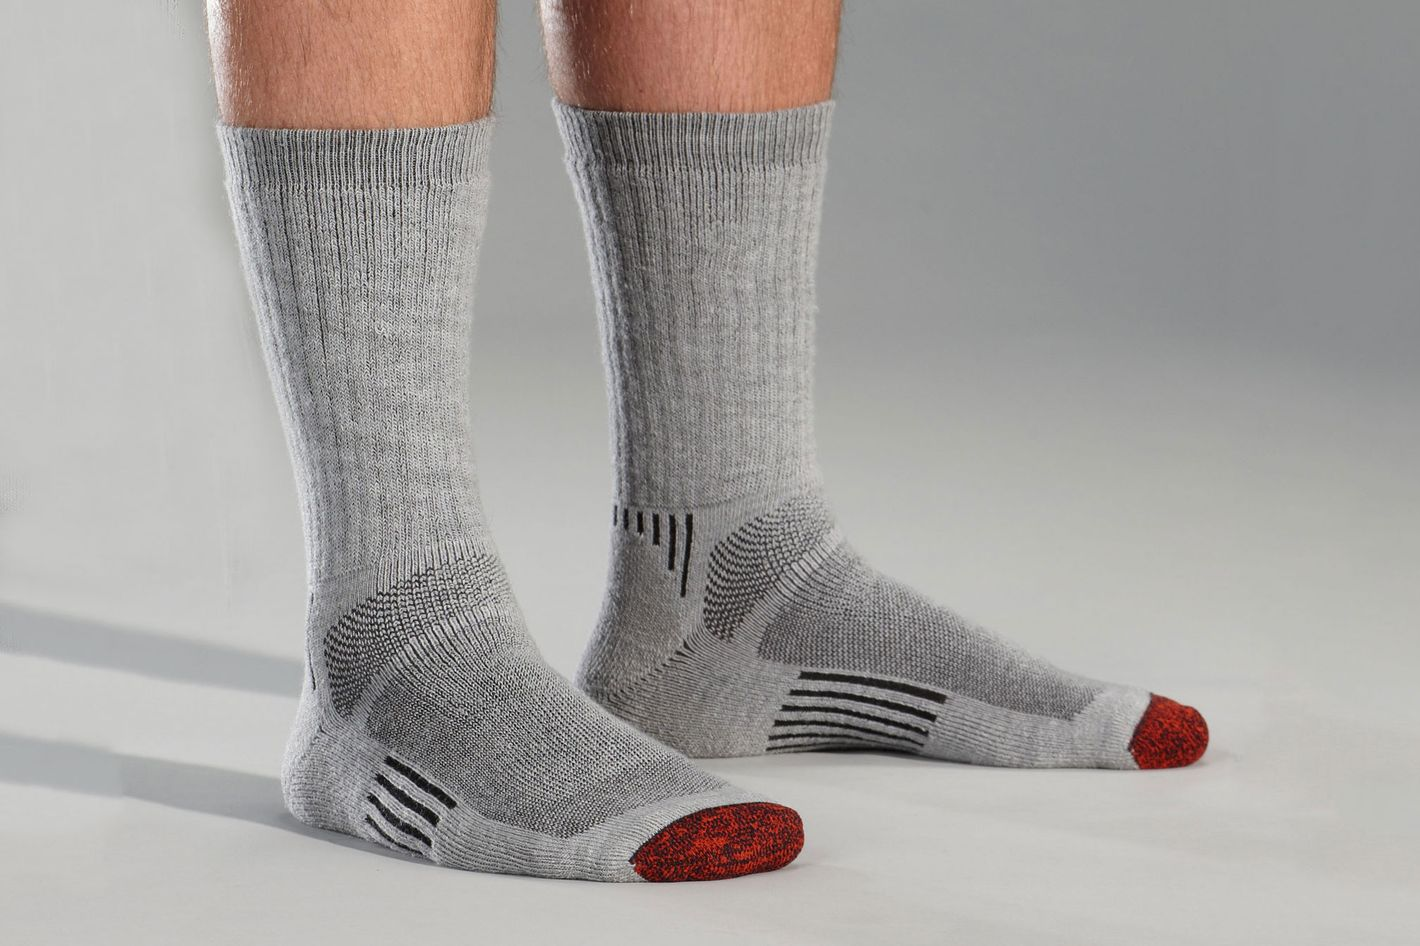 Duluth Trading Men's Midweight Fast-Drying Merino Wool Crew Socks